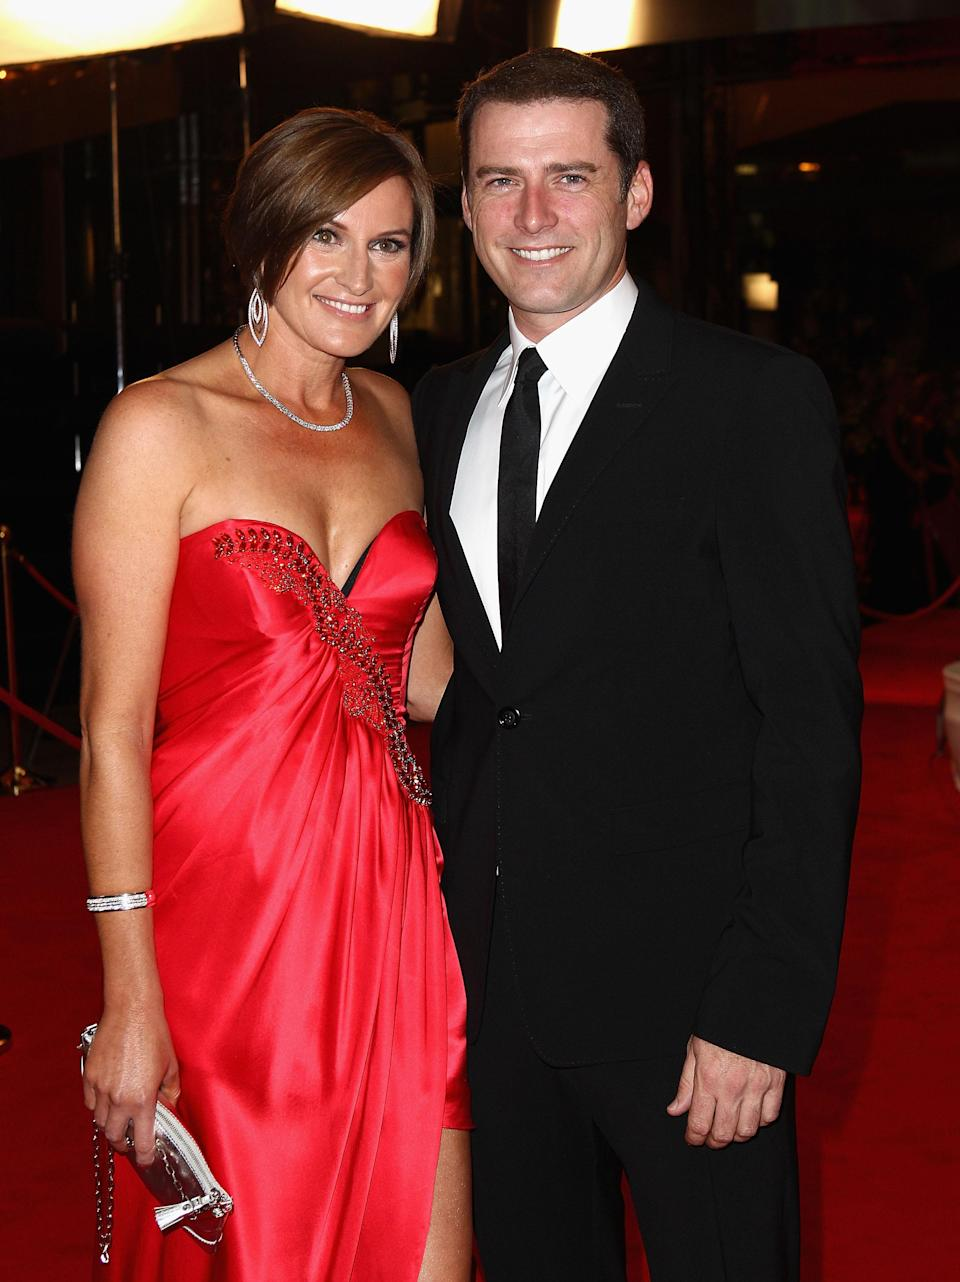 Cassandra with ex-husband Karl Stefanovic at the 2011 Logie Awards. Source: Getty